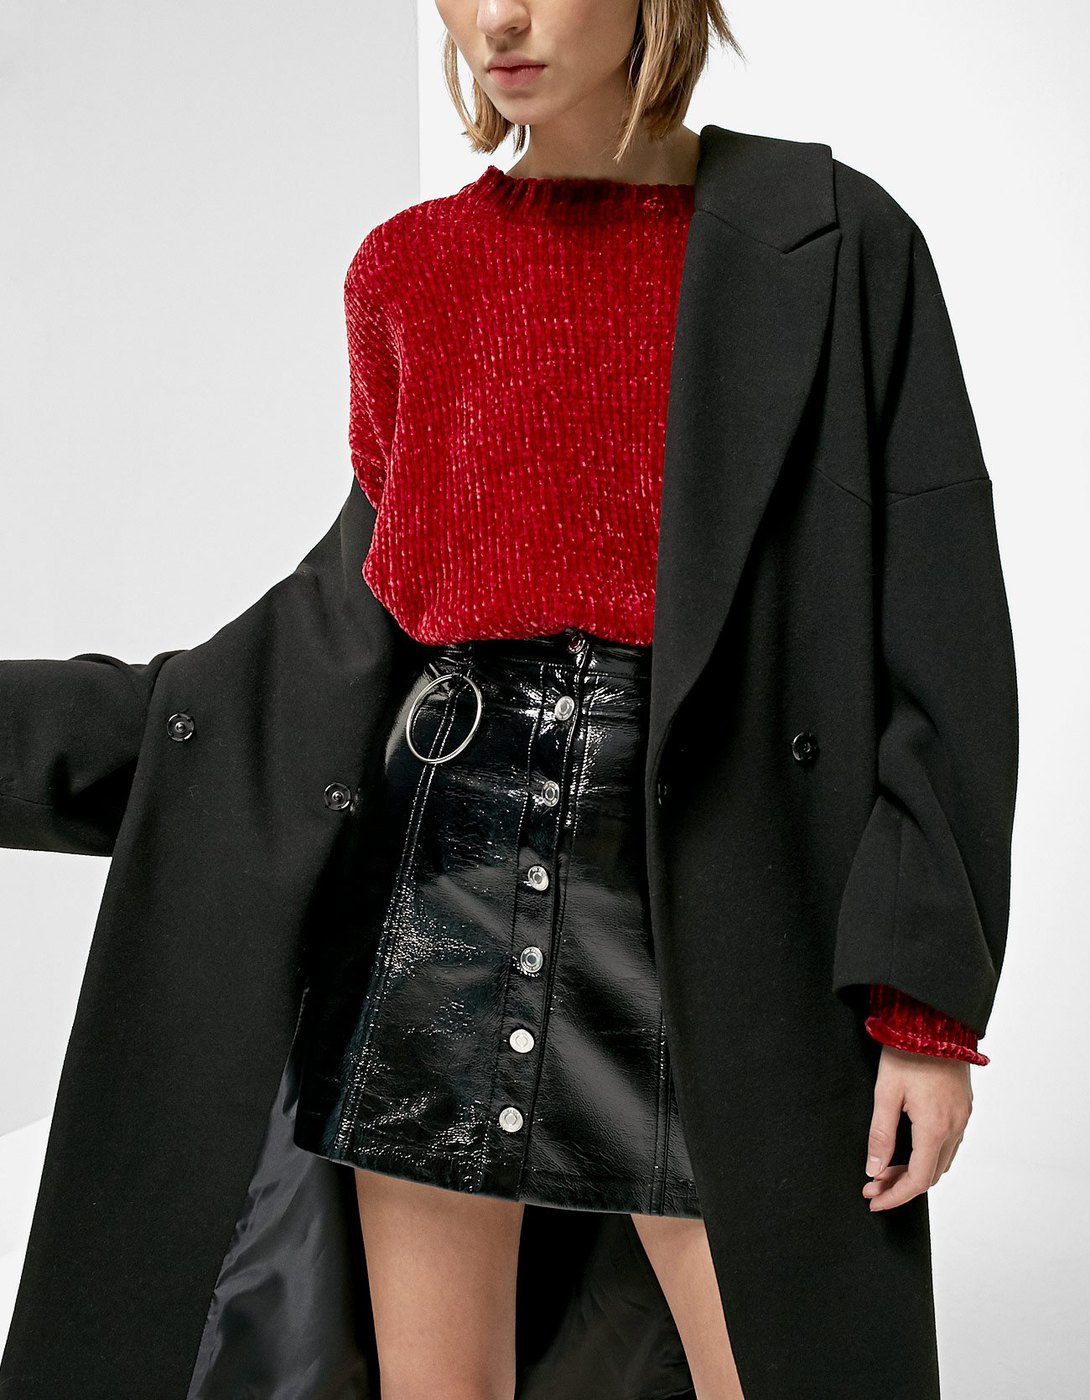 Patent Leather skirt - Stradivarius - € 15,99